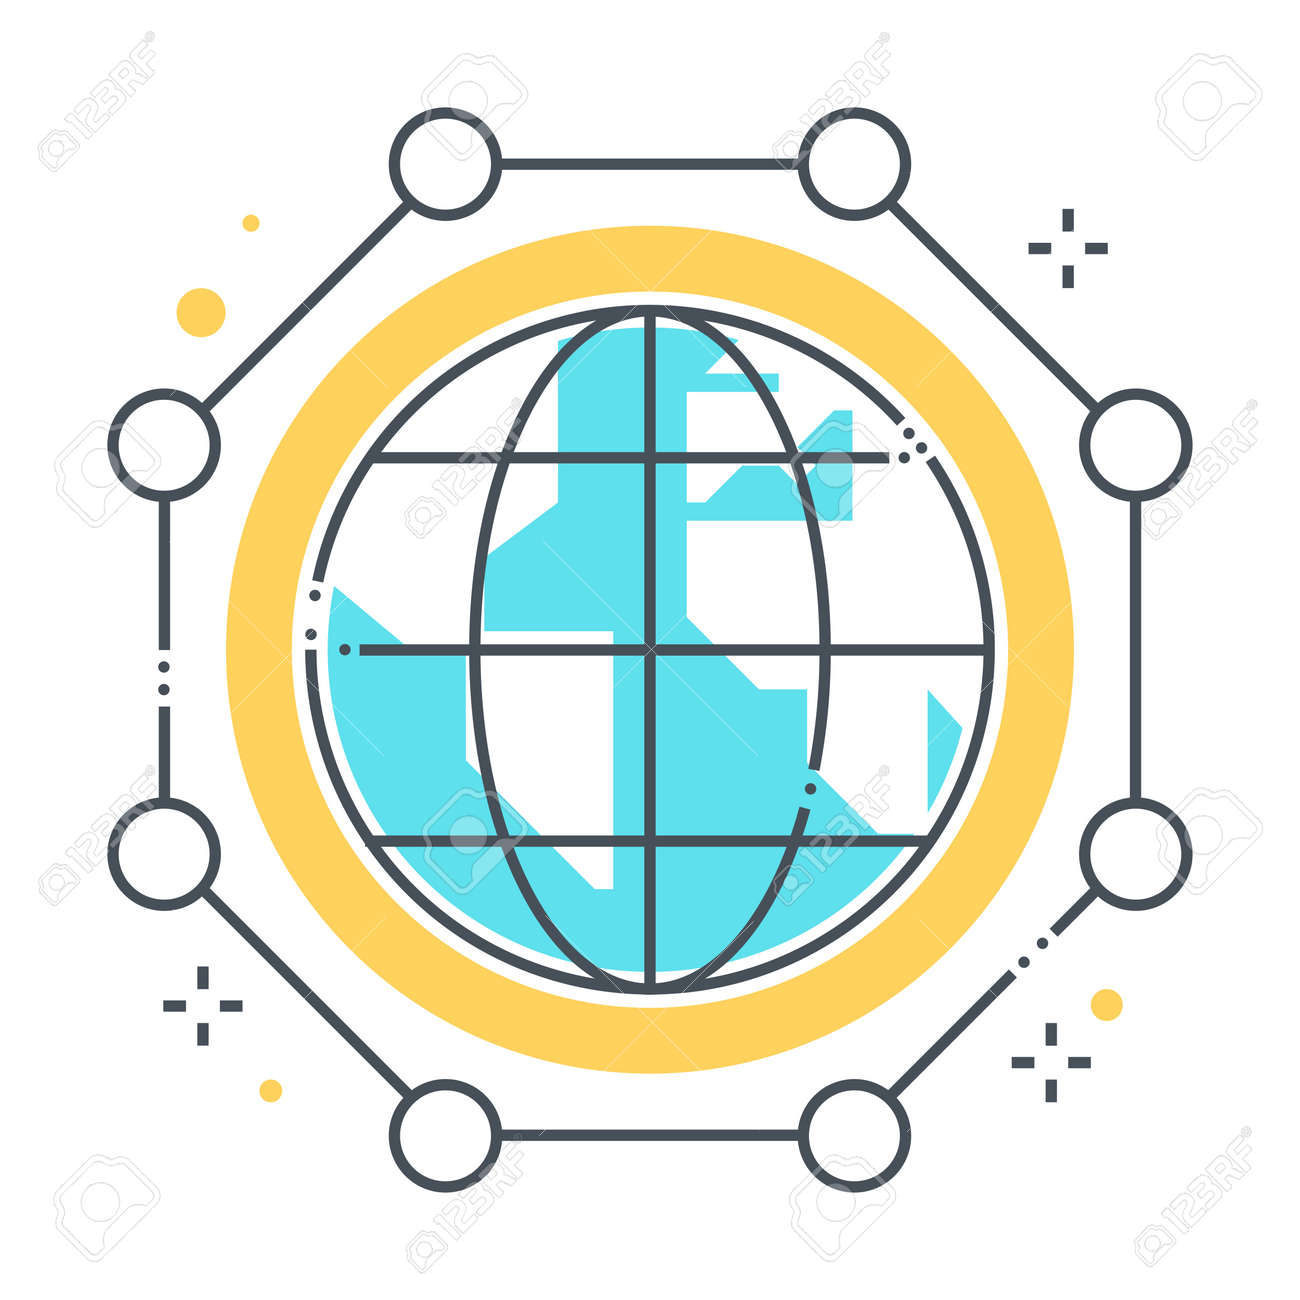 International connections related color line vector icon, illustration. The icon is about database, digital, global, globe, networking, planet. The composition is infinitely scalable. - 163698313